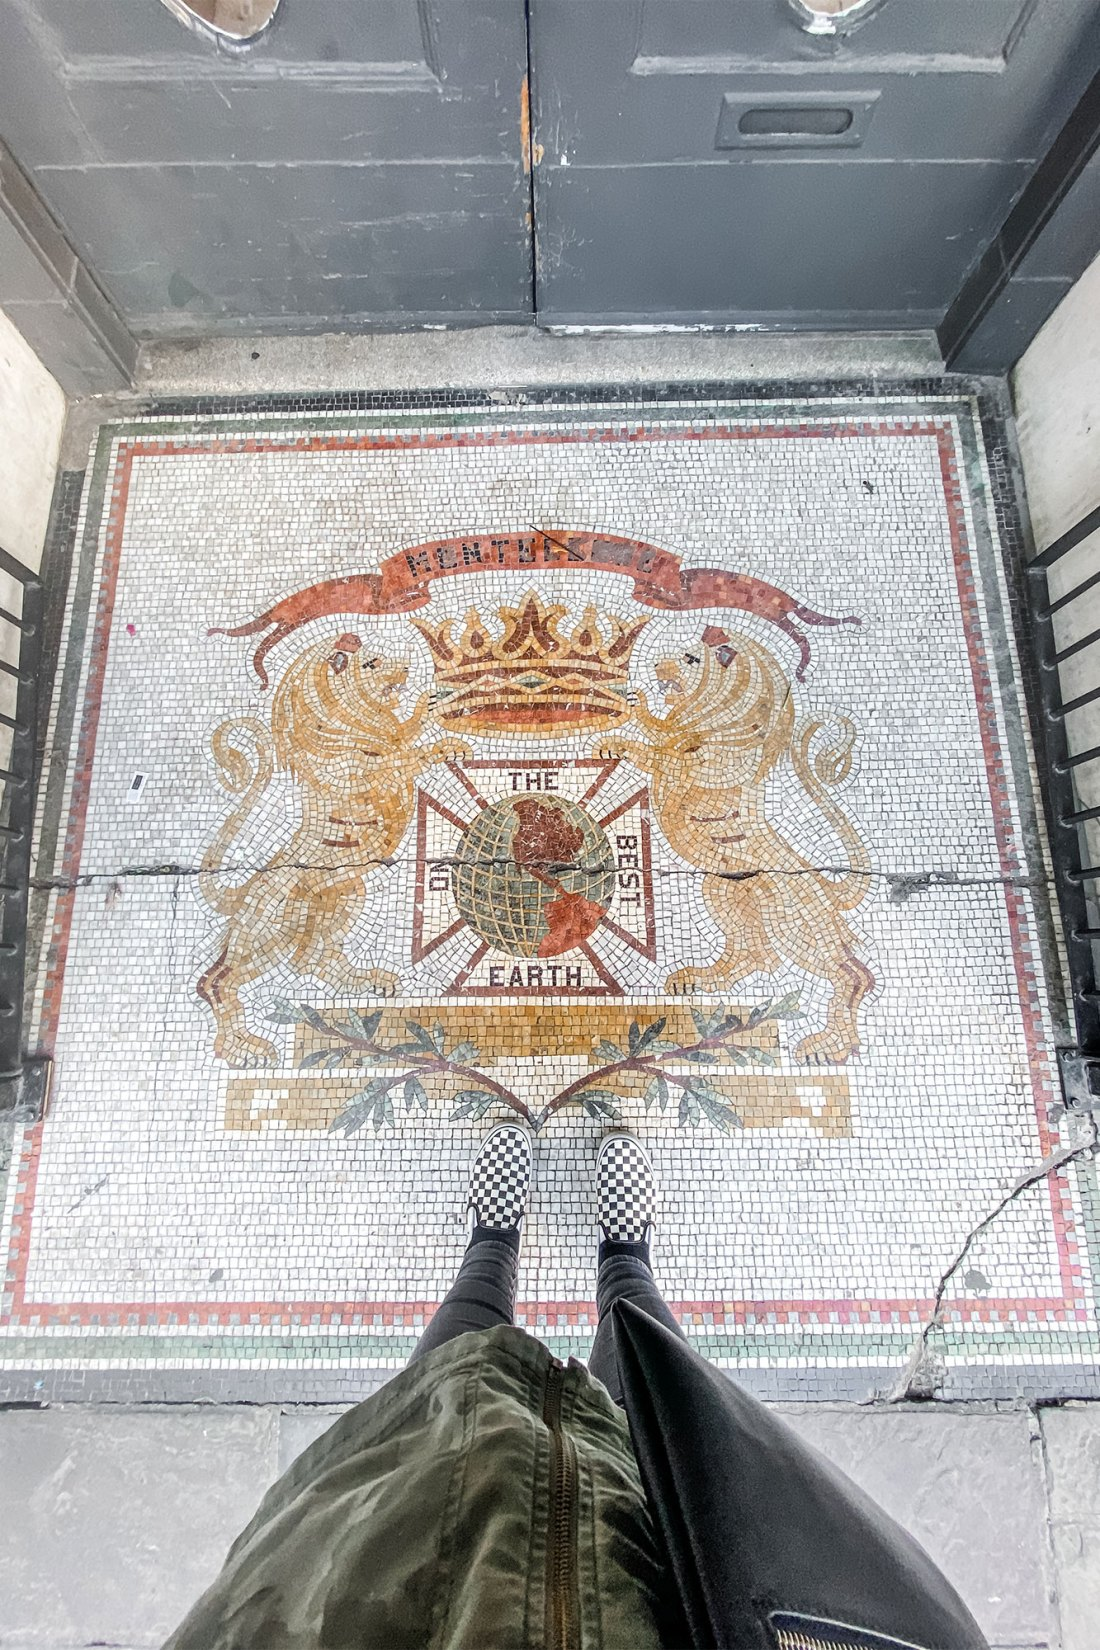 Feet on top of decorative tile